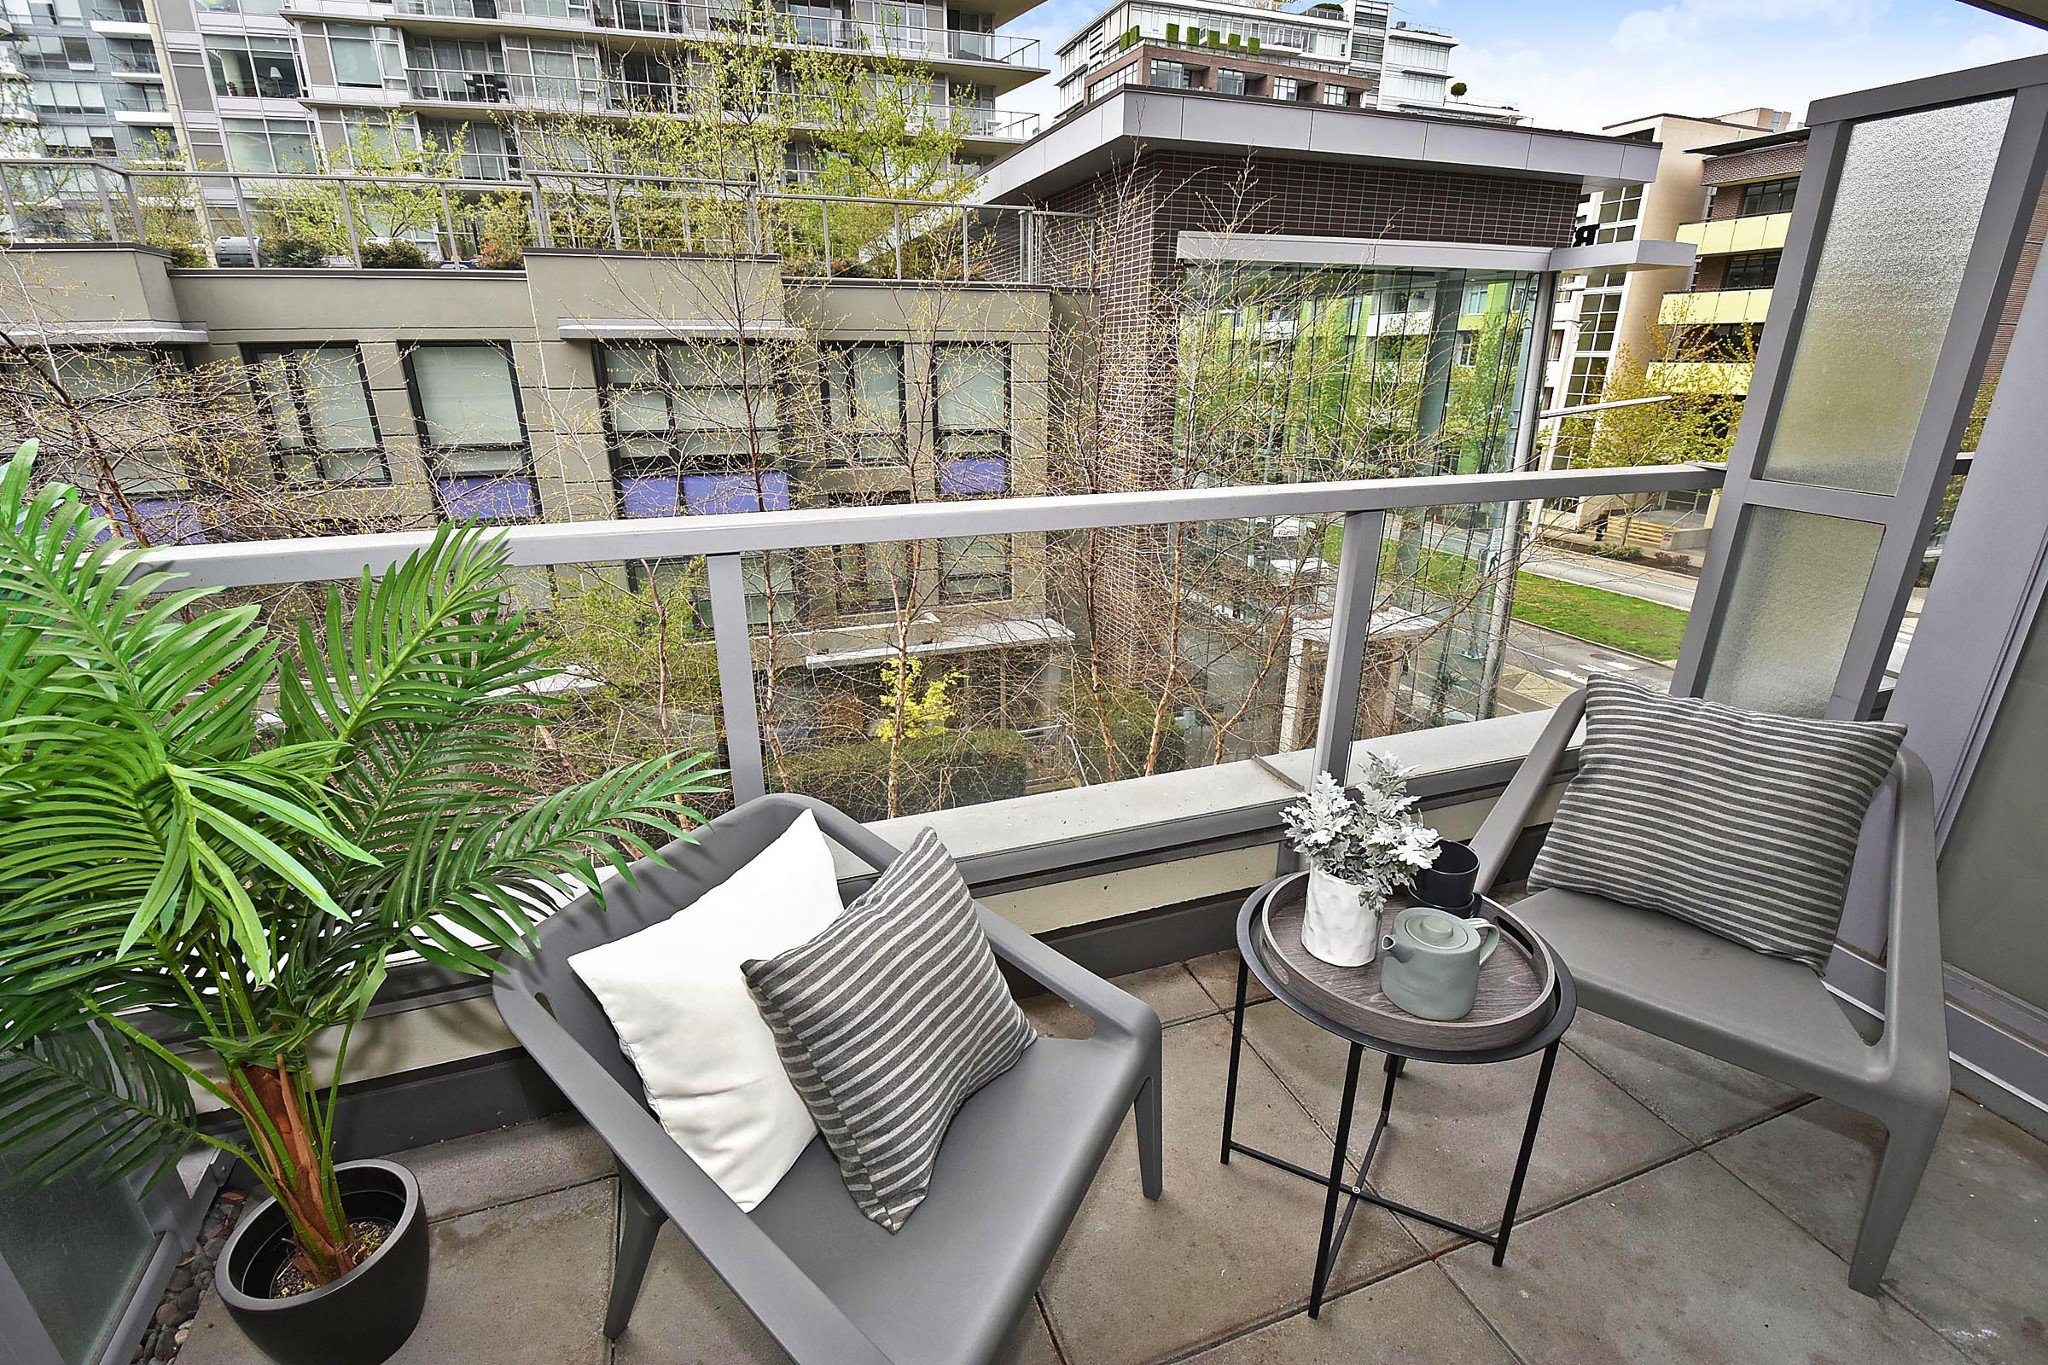 Photo 16: Photos: 306 138 W 1ST AVENUE in Vancouver: False Creek Condo for sale (Vancouver West)  : MLS®# R2360592